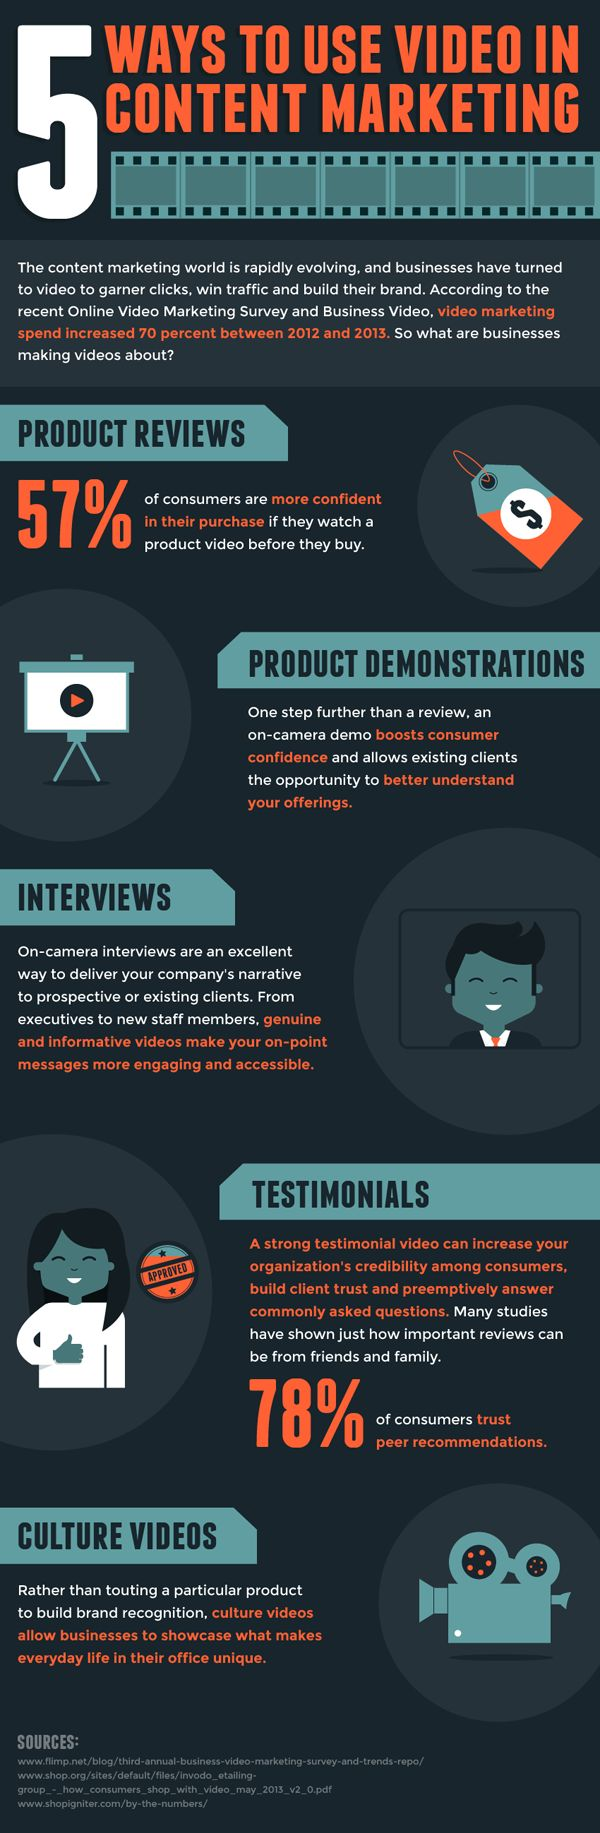 Ways to Use Video in Content Marketing [Infographic] - 'Net Features - Website Magazine http://zanraconsulting.com/